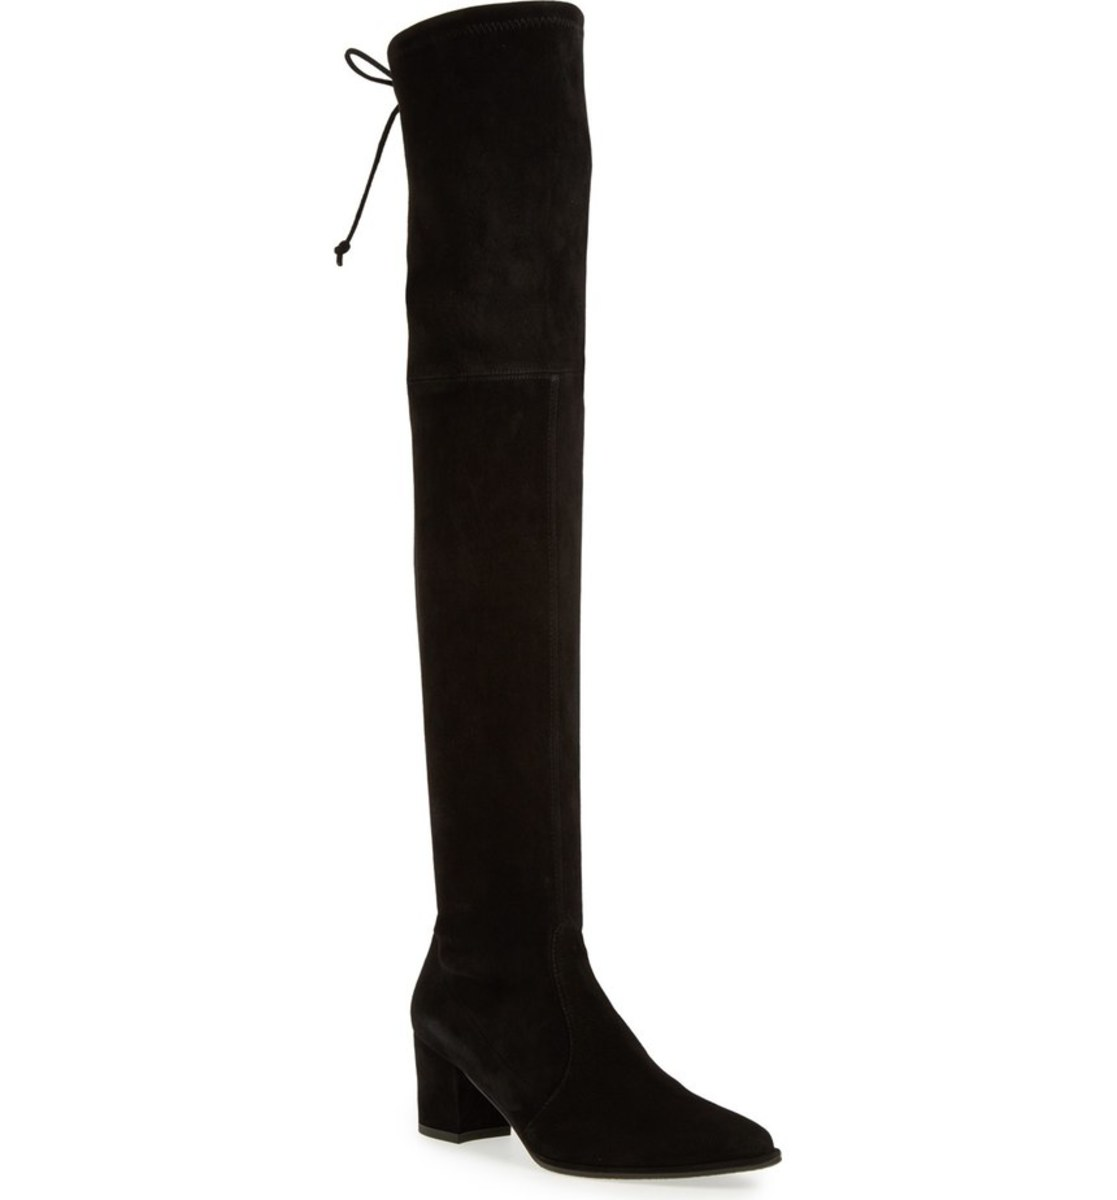 "Stuart Weitzman ""Thighland"" boots, $798, available at Nordstrom."